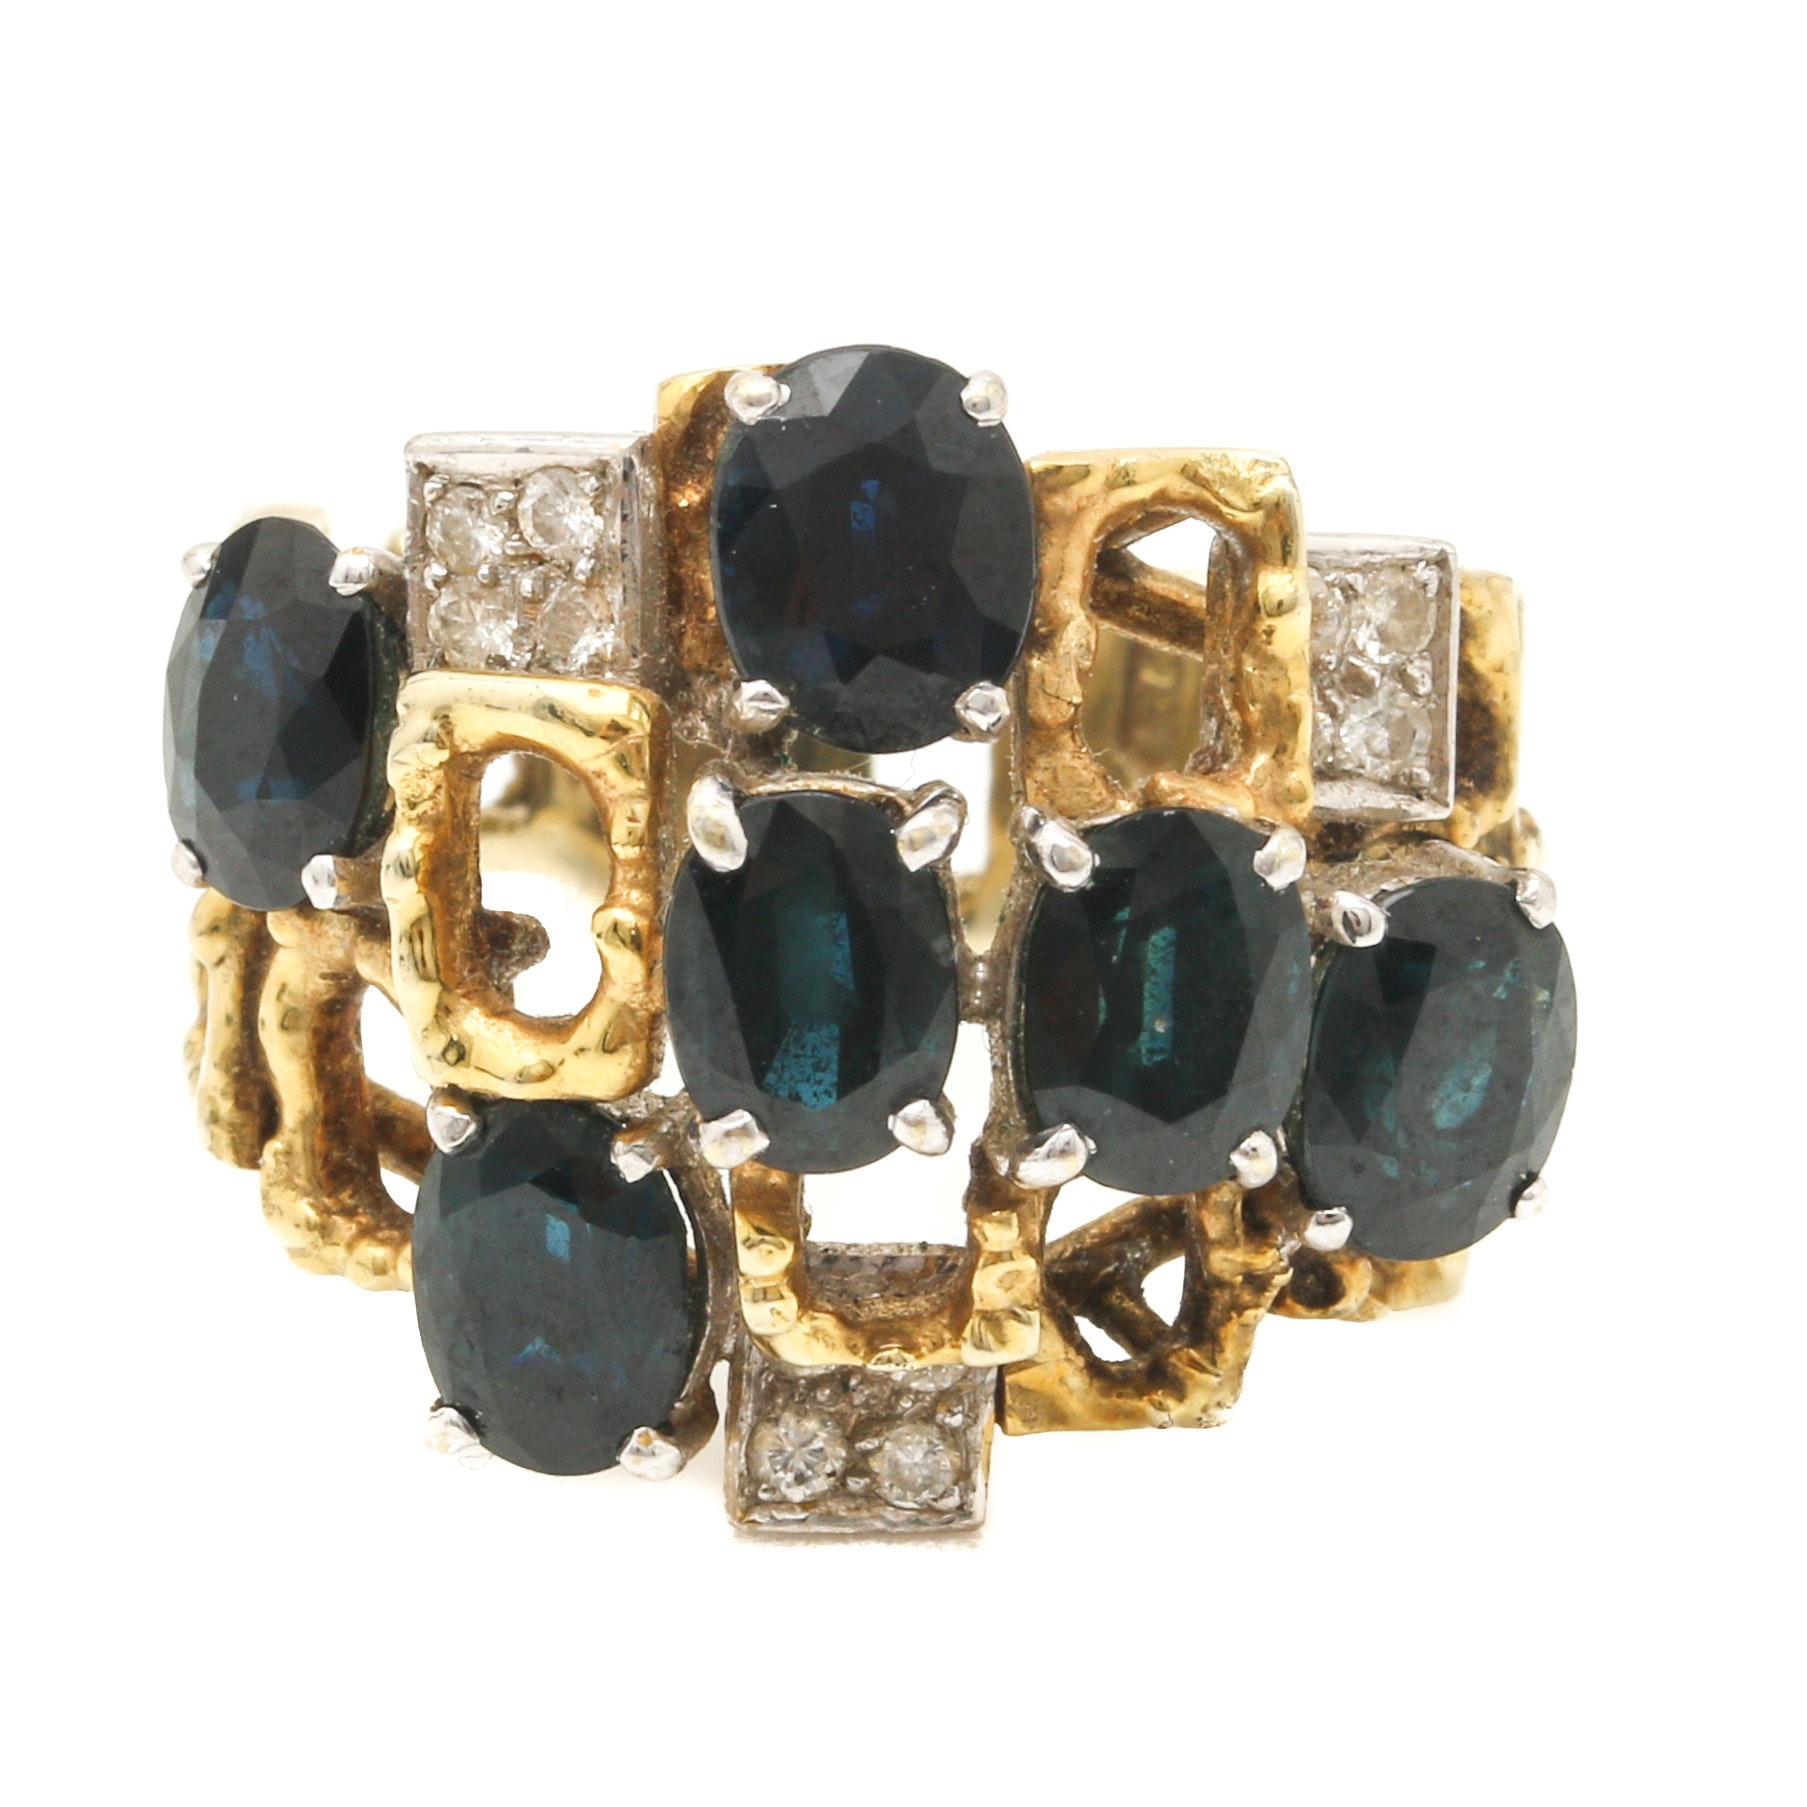 Vintage Brutalist 14K Yellow Gold Sapphire and Diamond Ring